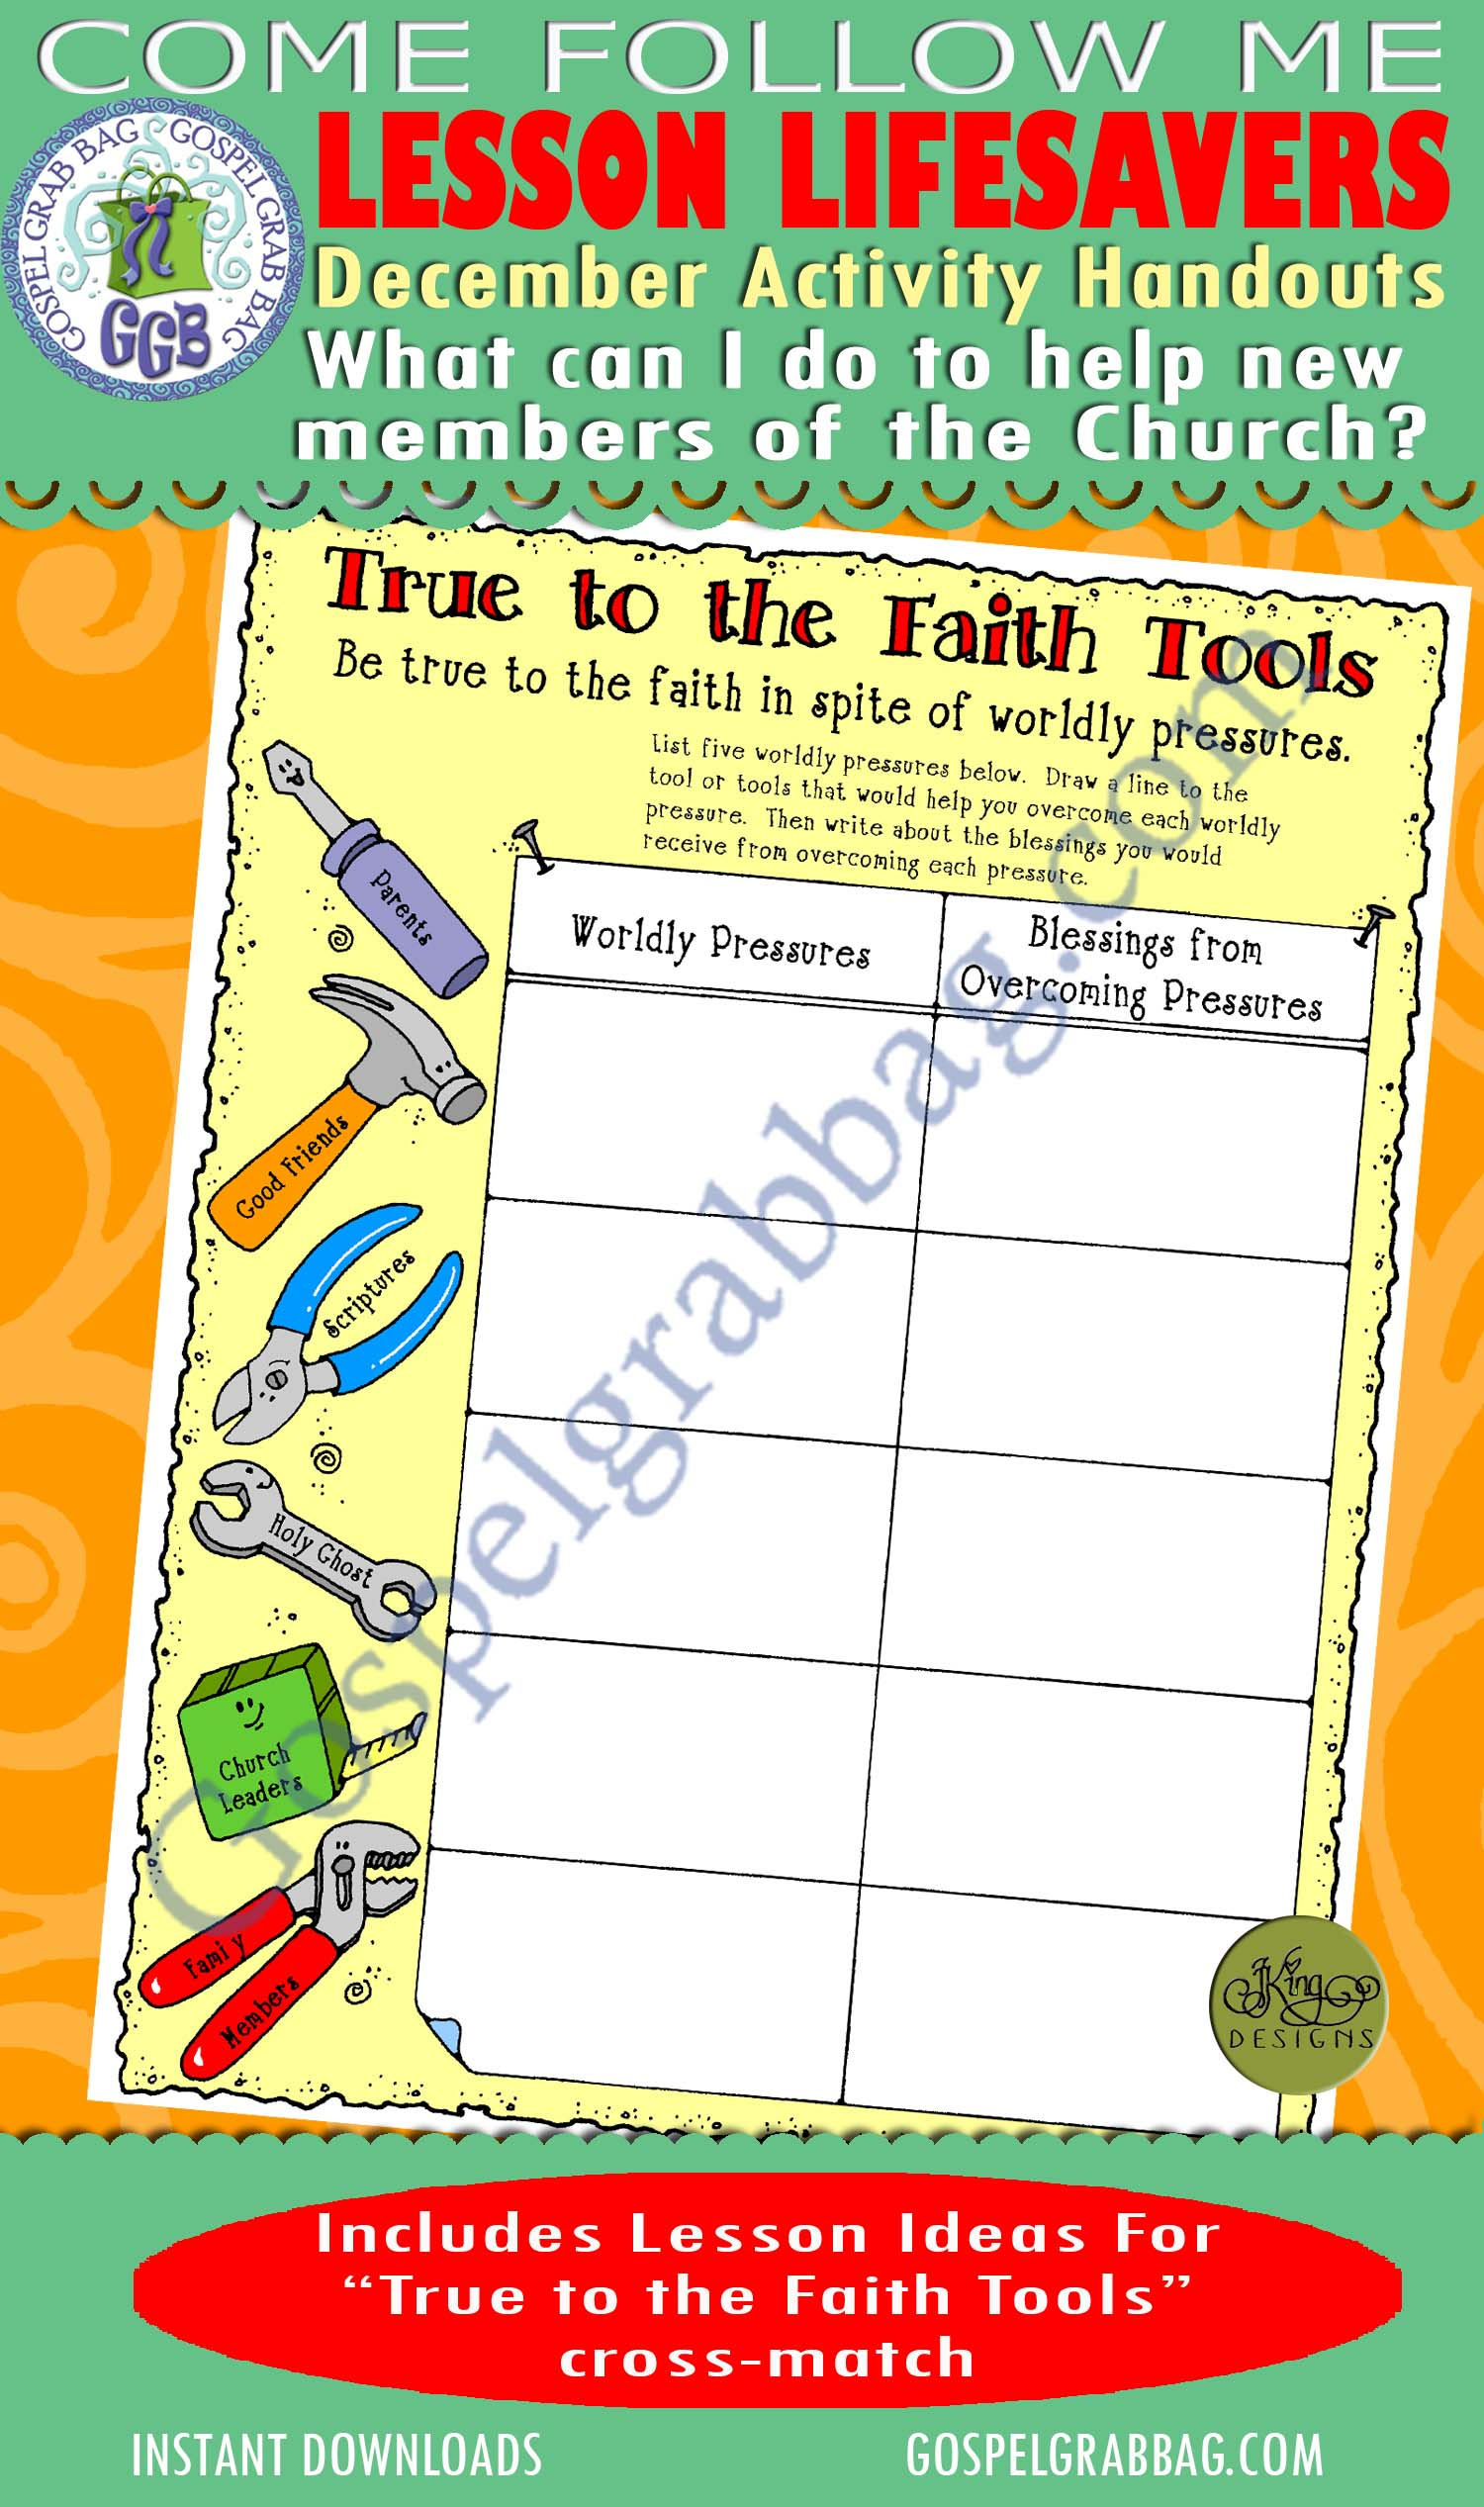 "$1.75 December Lesson 4 - Come Follow Me ""What can I do to help new members of the Church?"" ACTIVITY: True to the Faith cross-match"